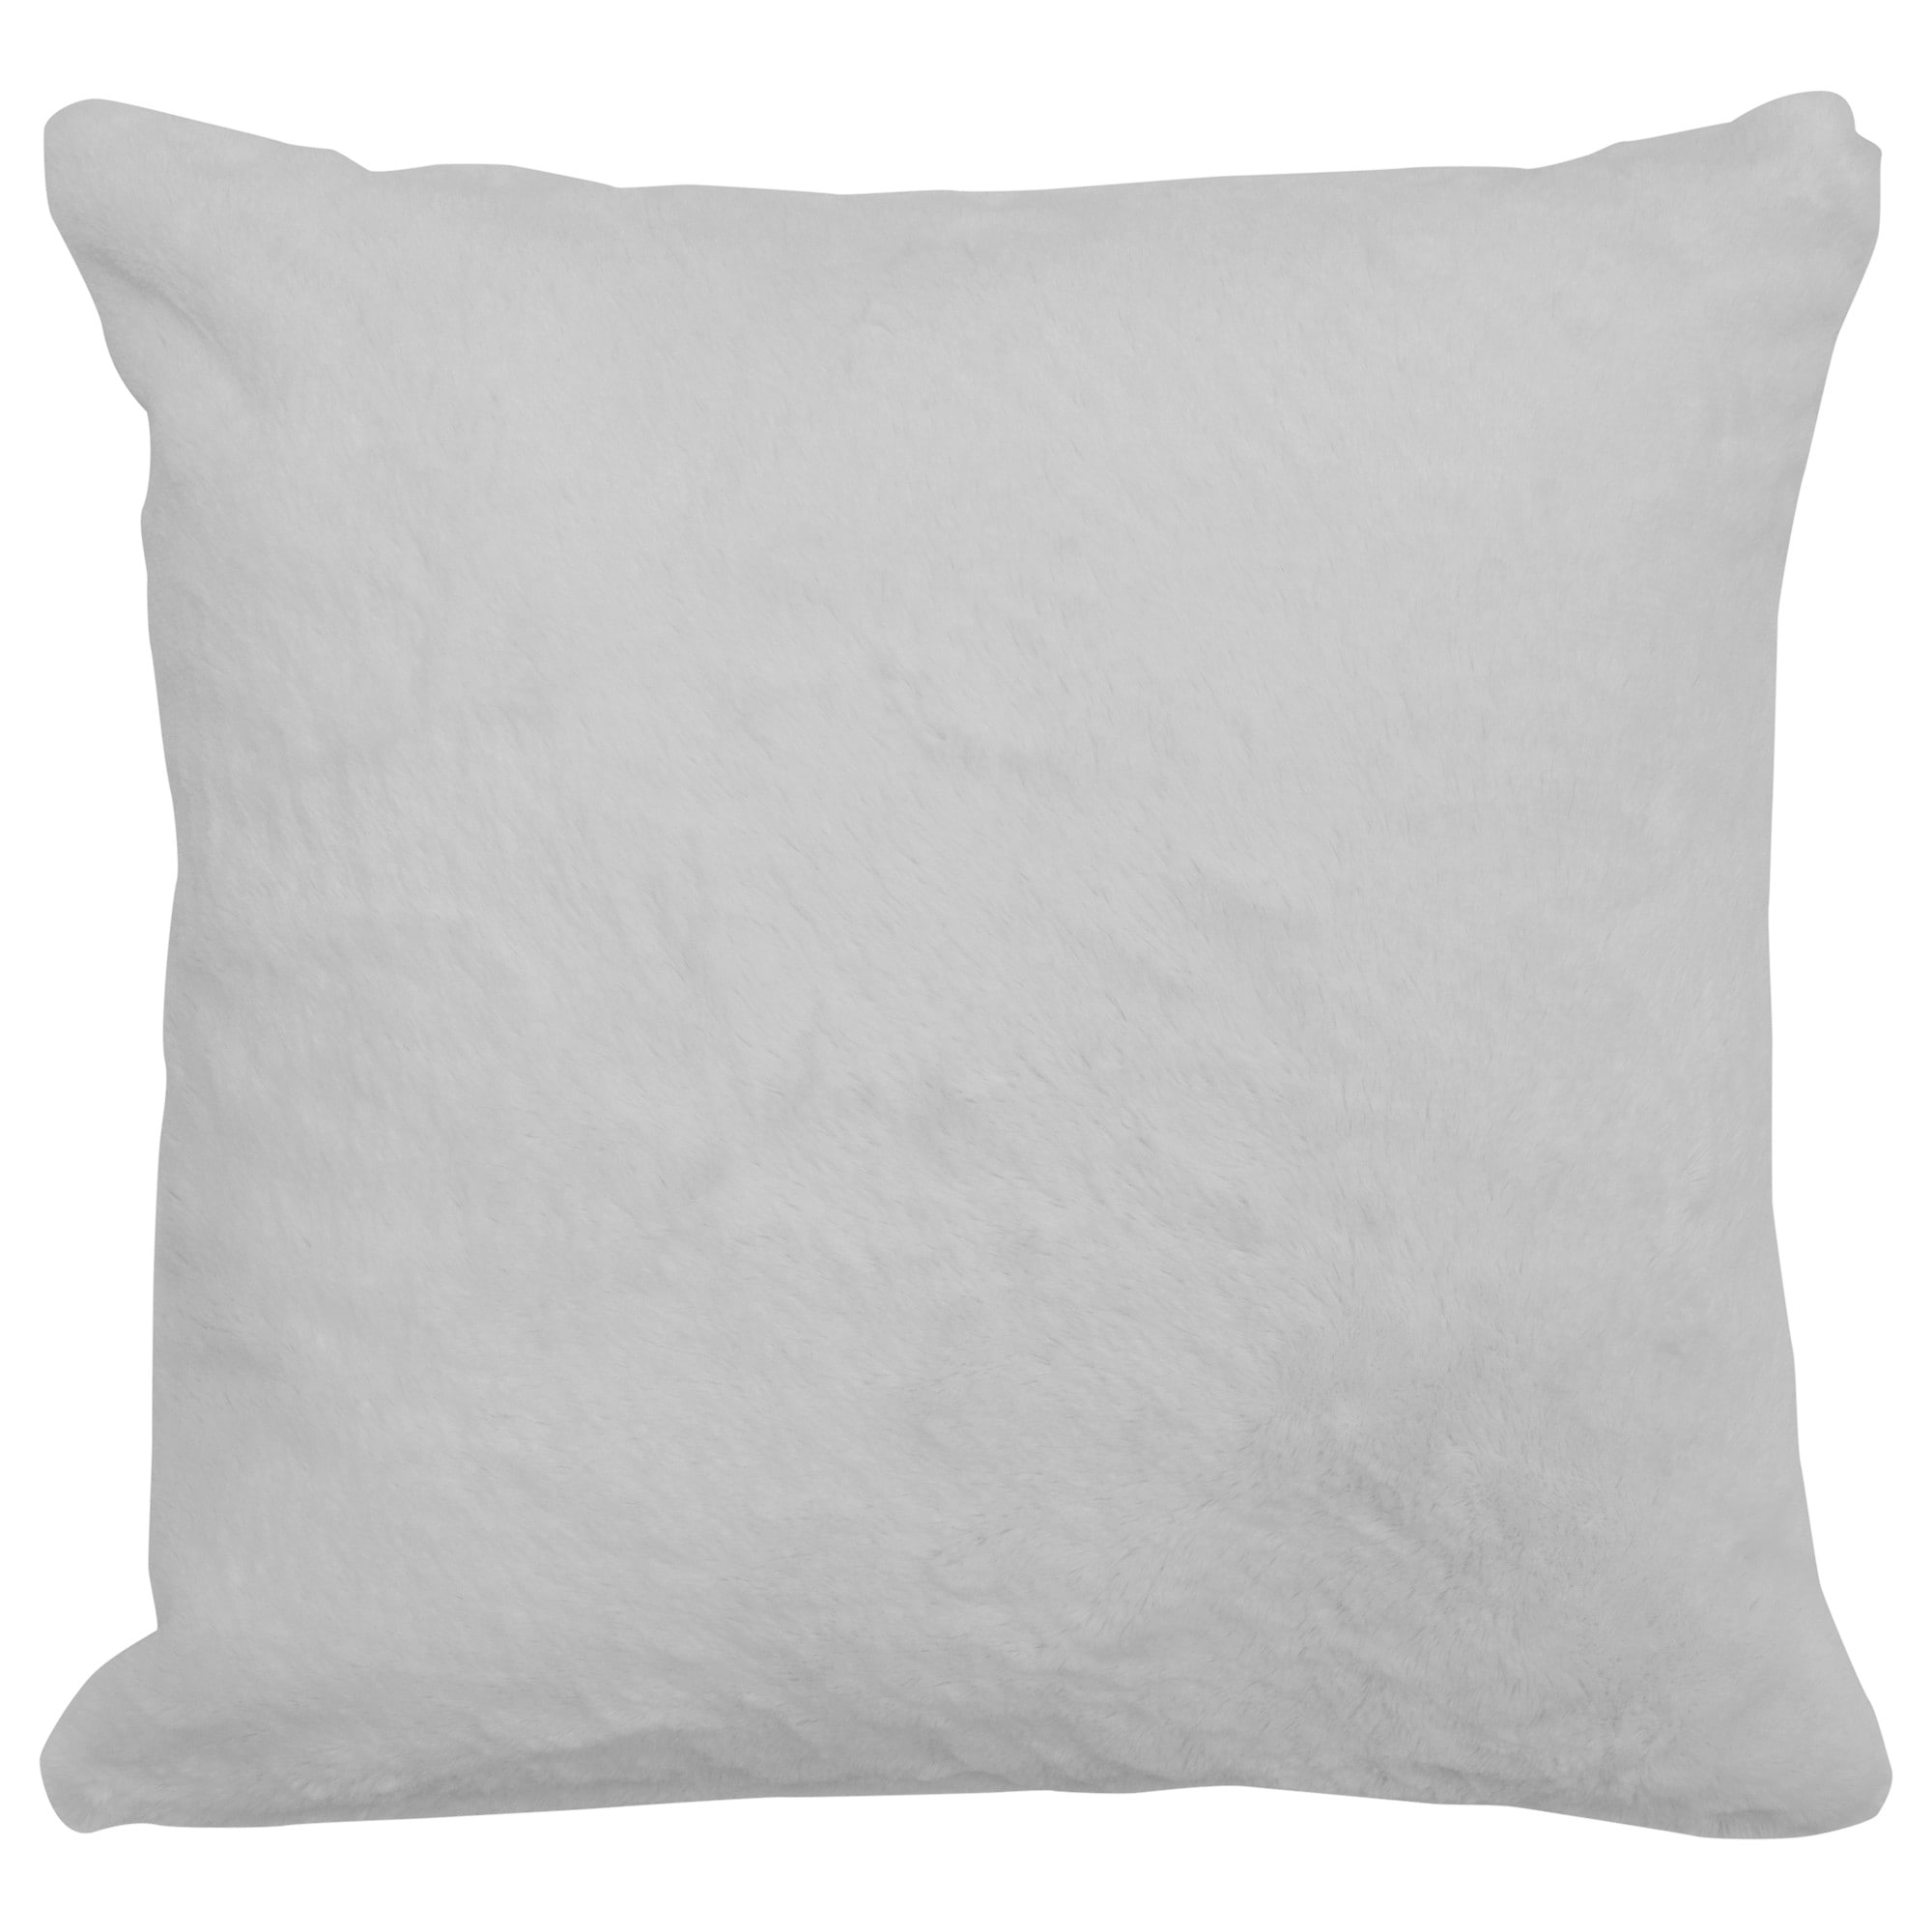 White and grey pillows decorative throw pillows cushions for Small decorative throw pillows